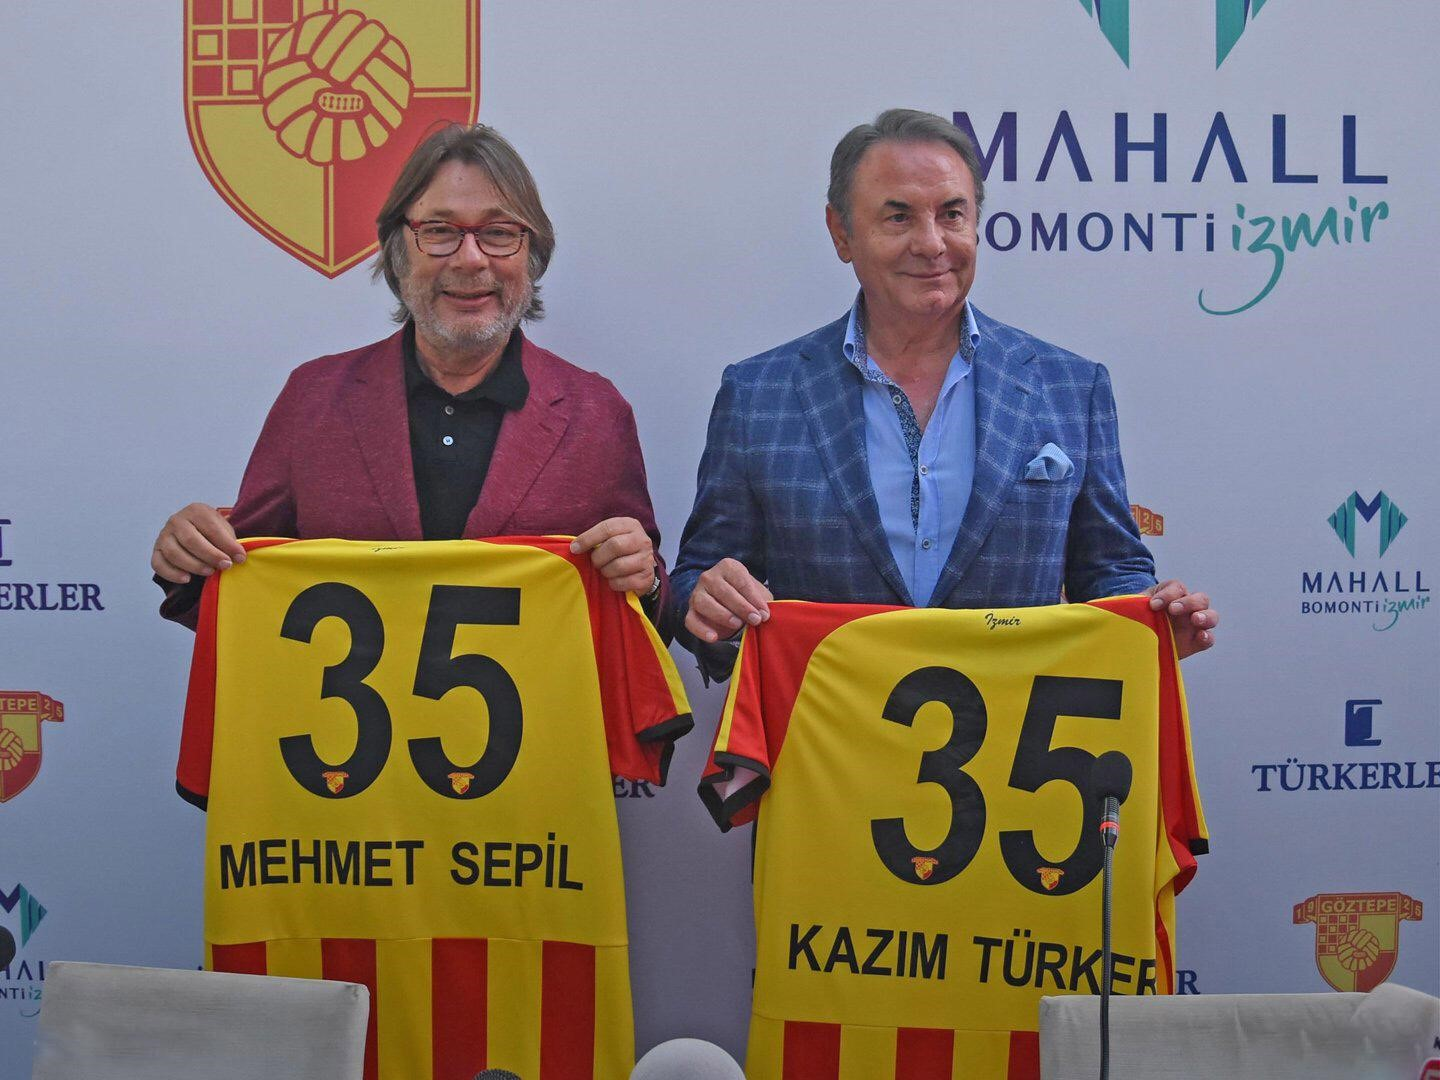 Göztepe's Main Sponsorship Deal With Türkerler Holding Is Already Signed Off